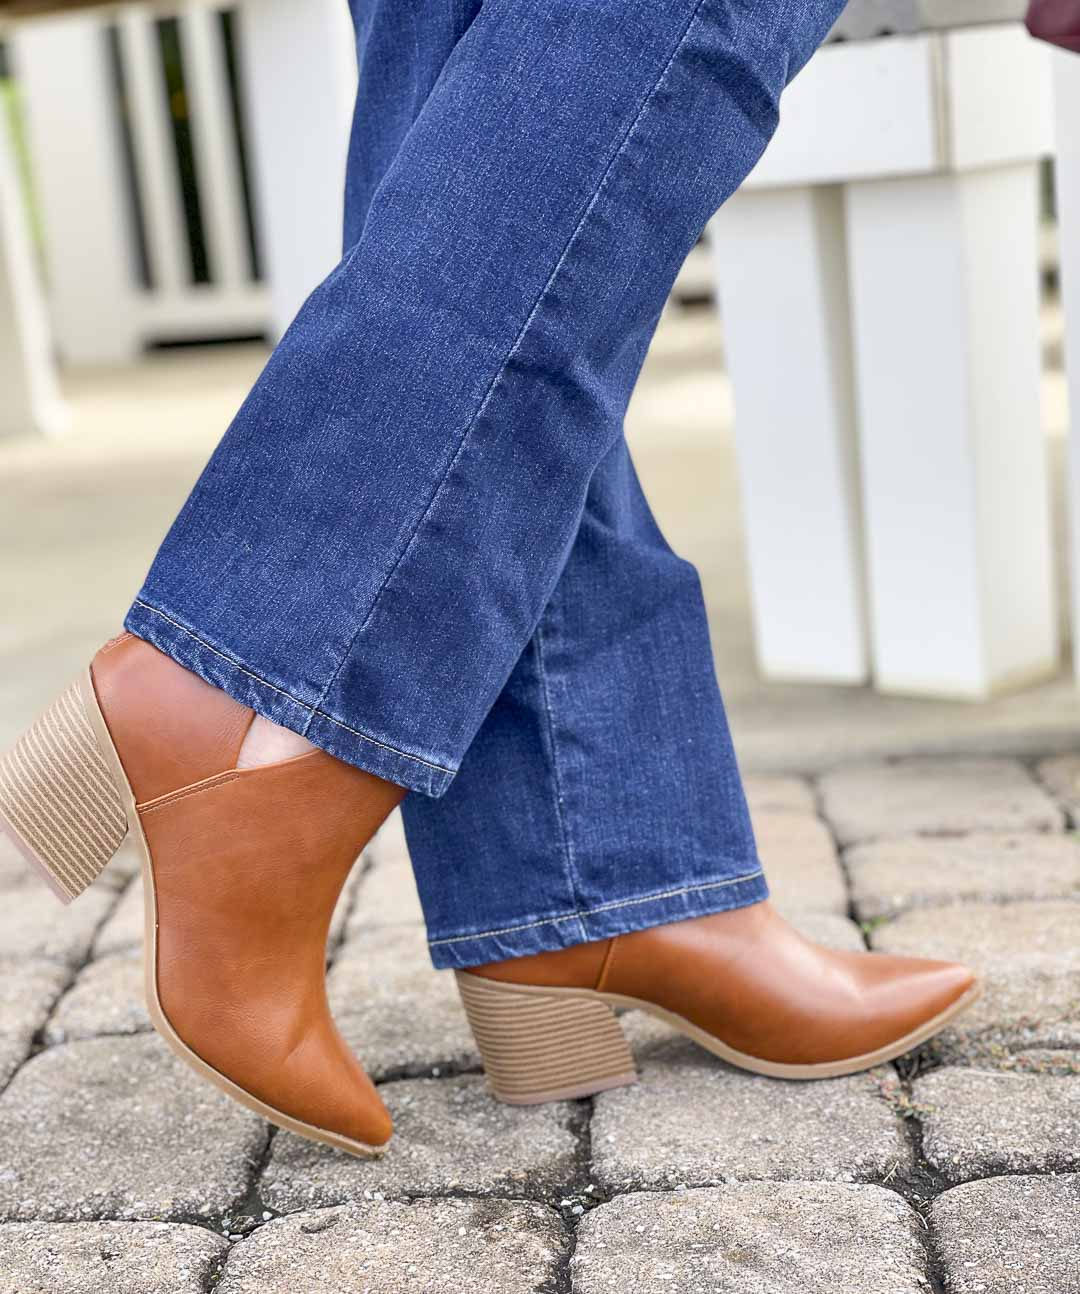 Over 40 Fashion Blogger, Tania Stephens, is showing her recent Walmart haul including these faux leather ankle boots